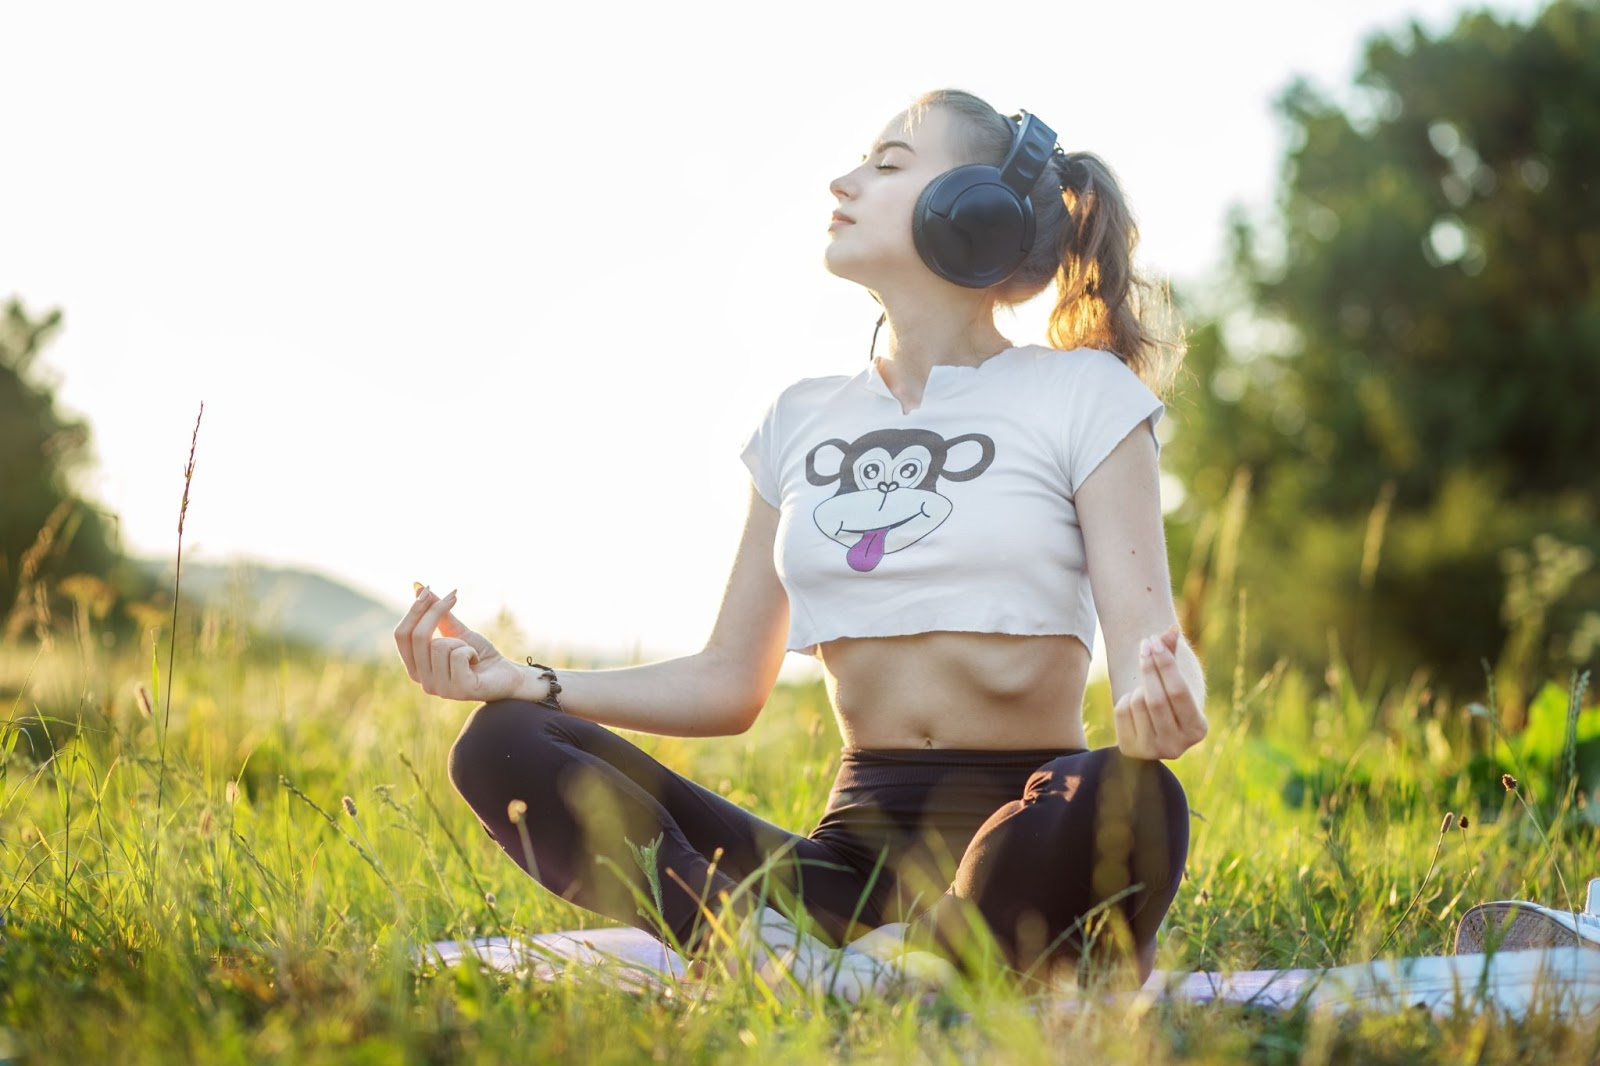 Practicing with Yoga music makes you forget about fatigue